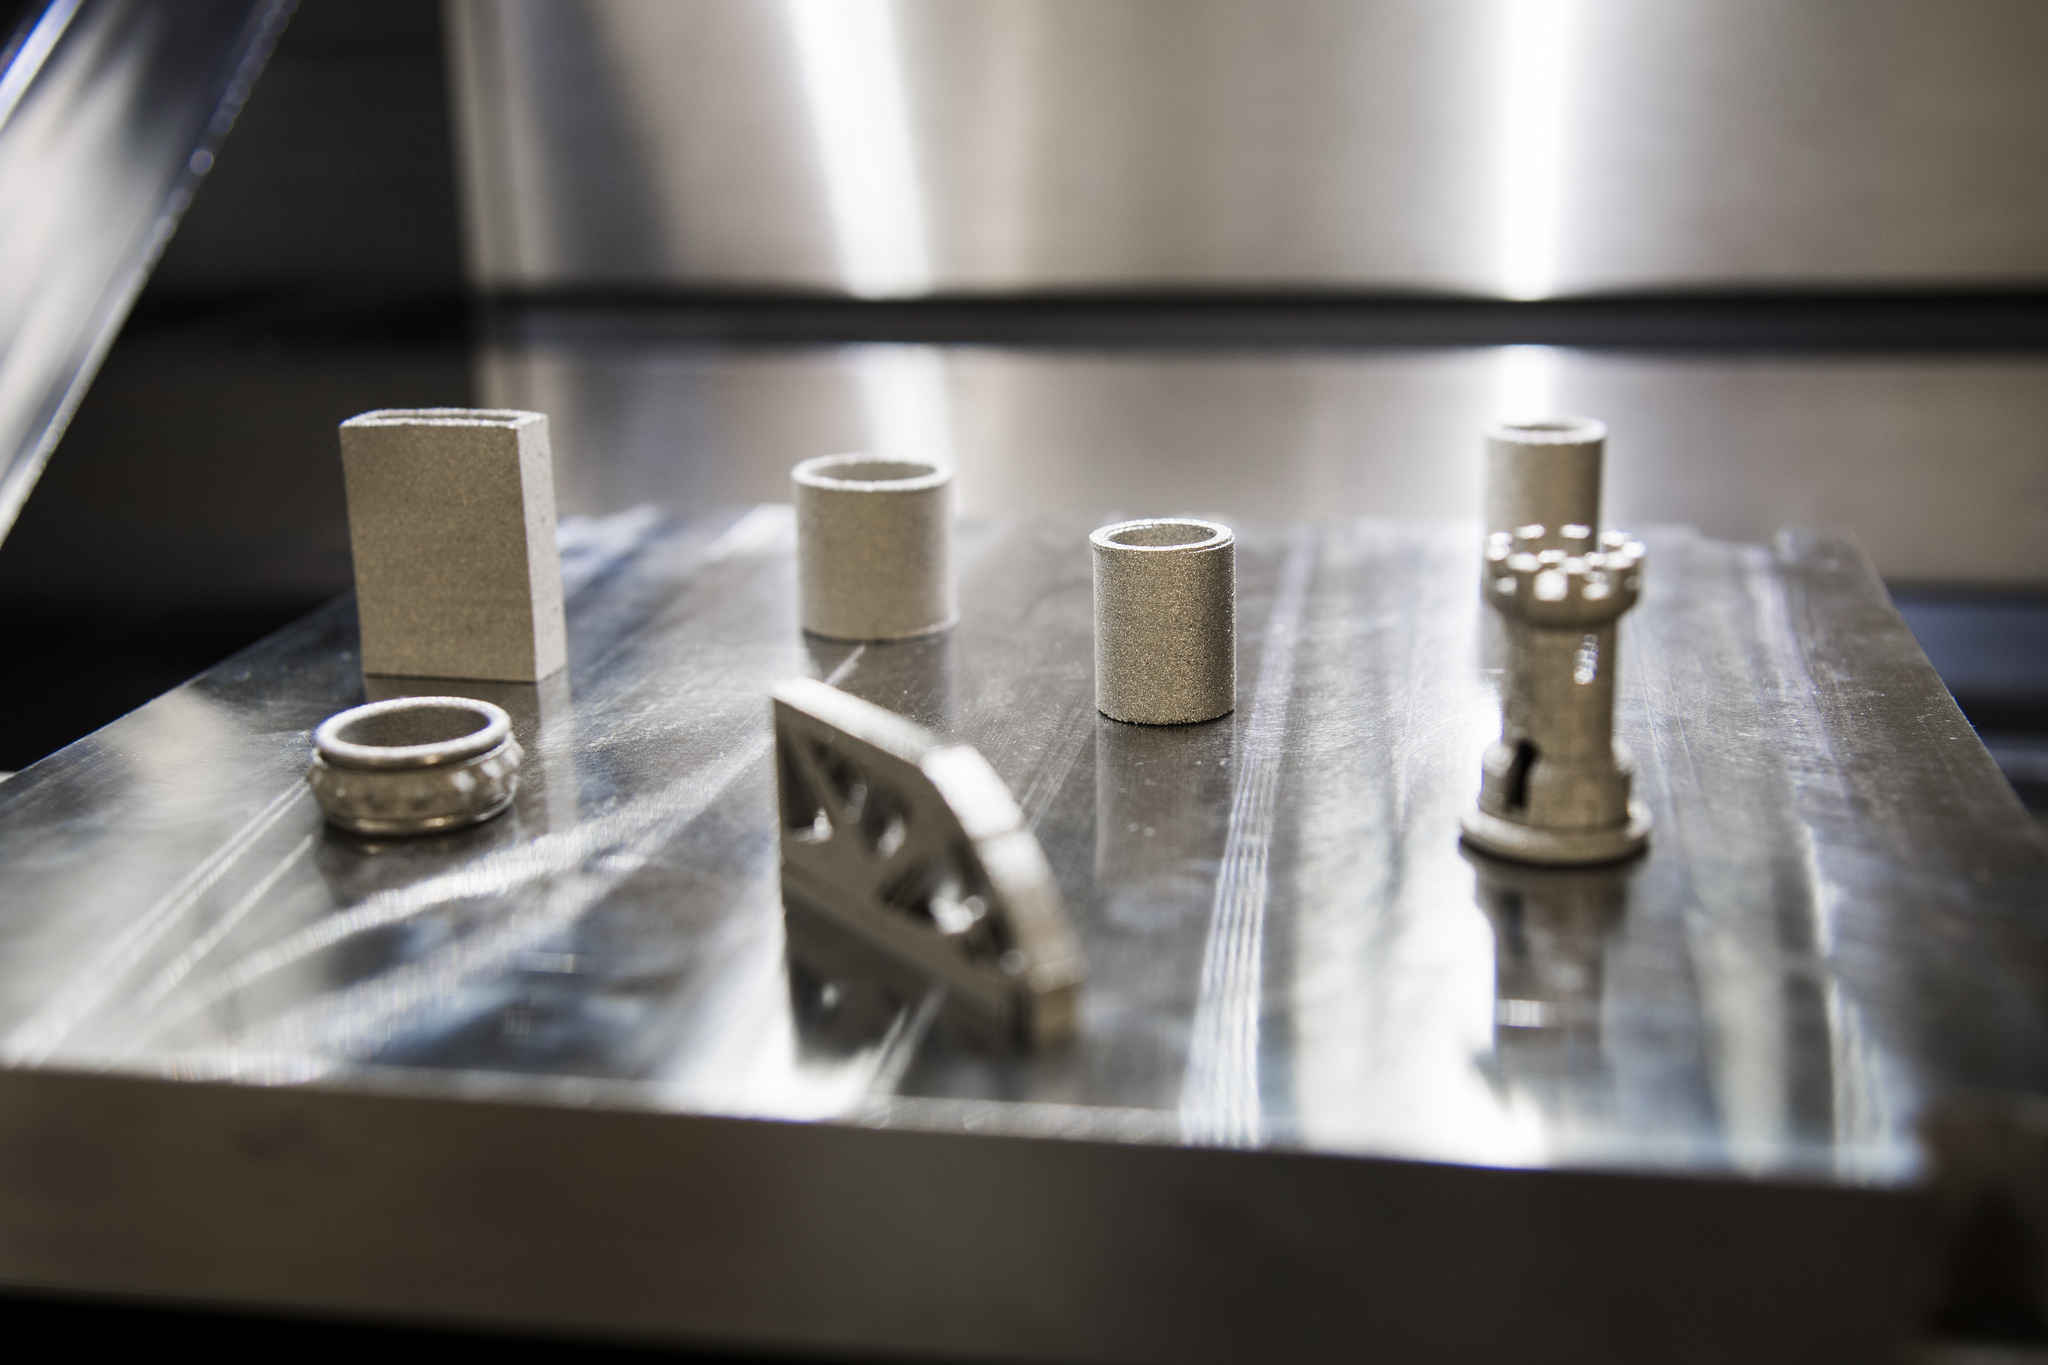 Metal 3D printed samples from a previous project at Auburn. Photo via Auburn University.